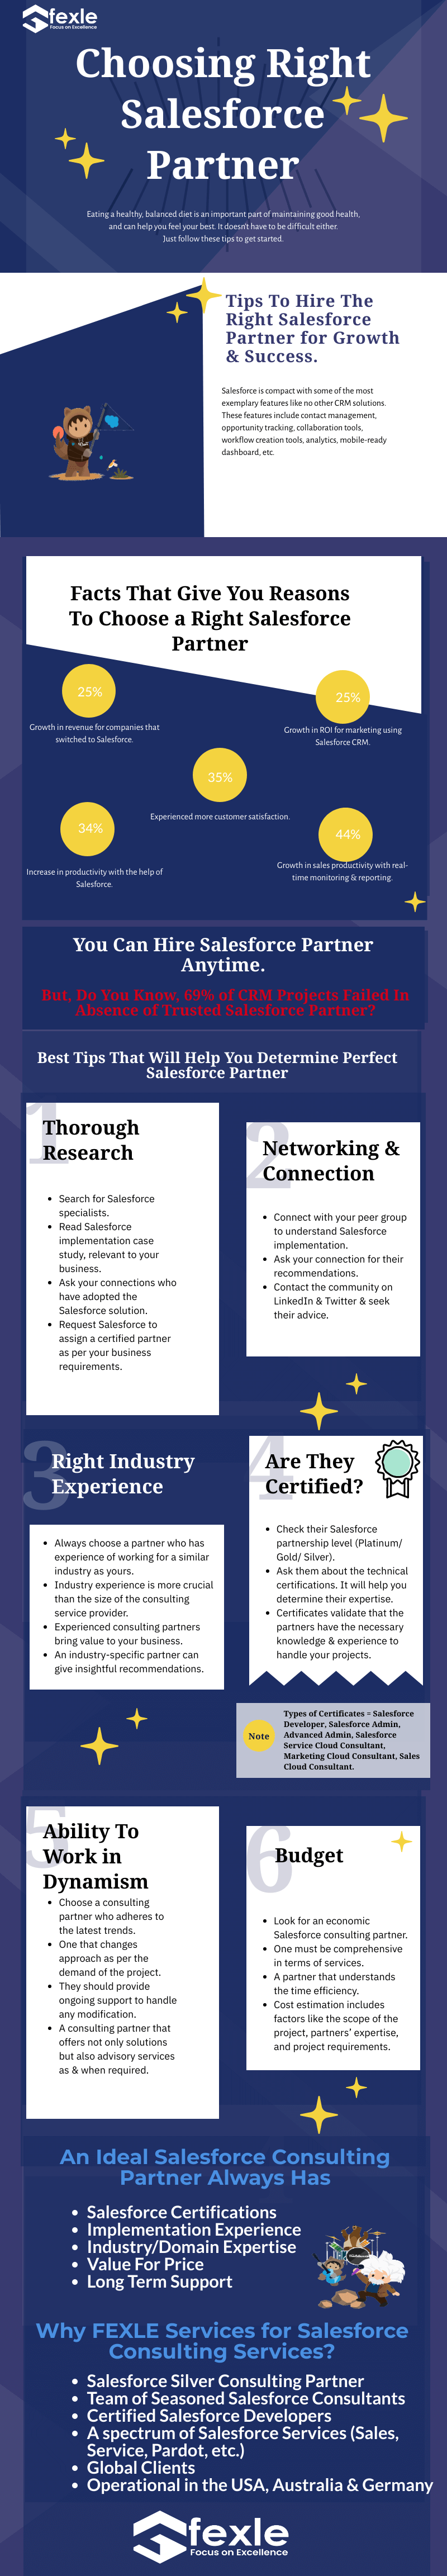 Choosing the Right Salesforce Partner - Guide